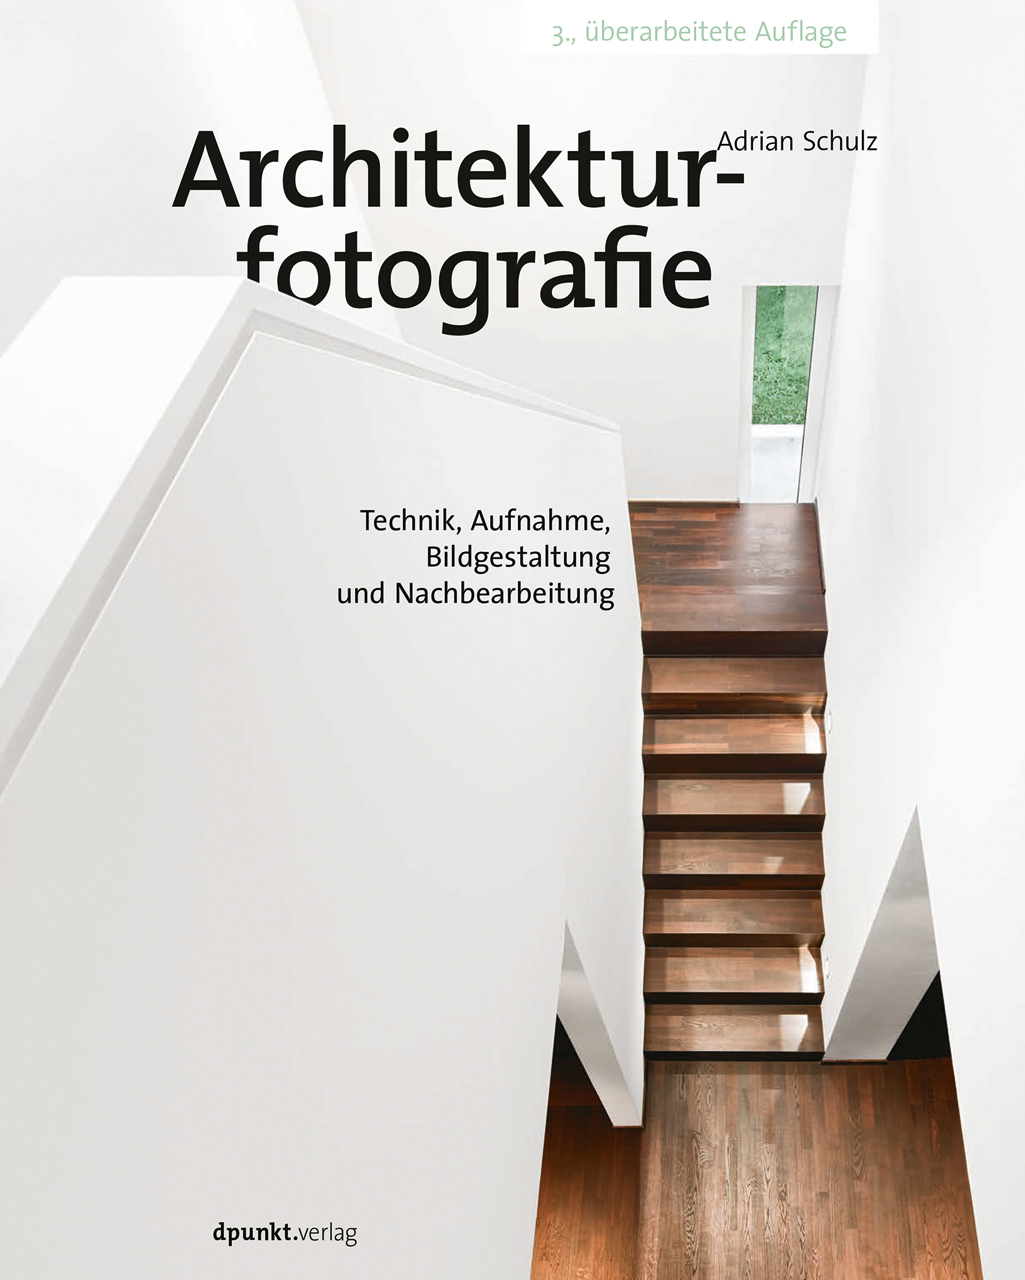 geb ude fotografieren adrian schulz architekturfotografie. Black Bedroom Furniture Sets. Home Design Ideas